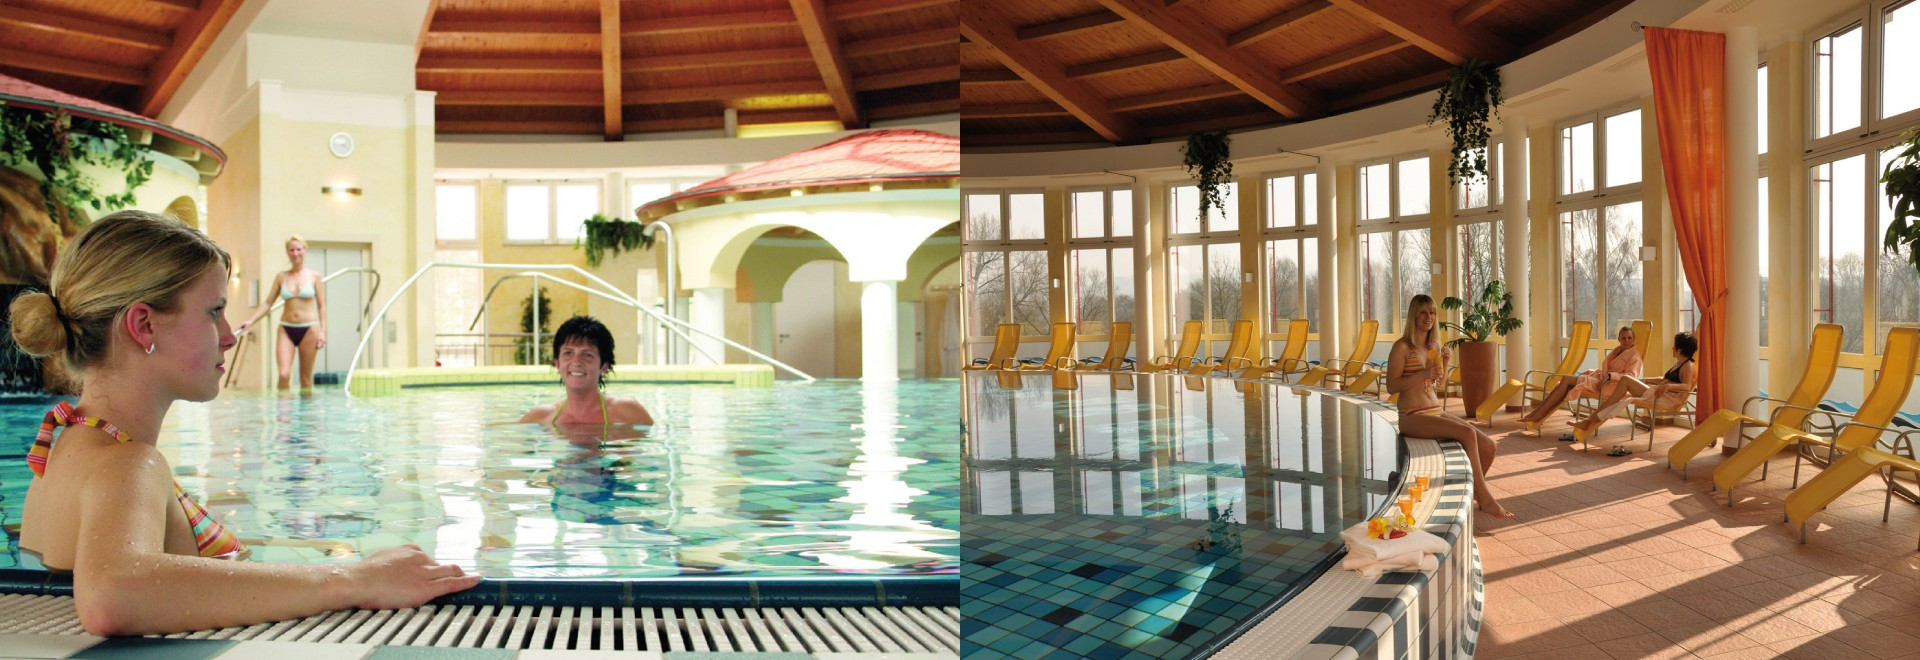 Hotel Thermalis Bad Hersfeld Wellness Im Kurpark